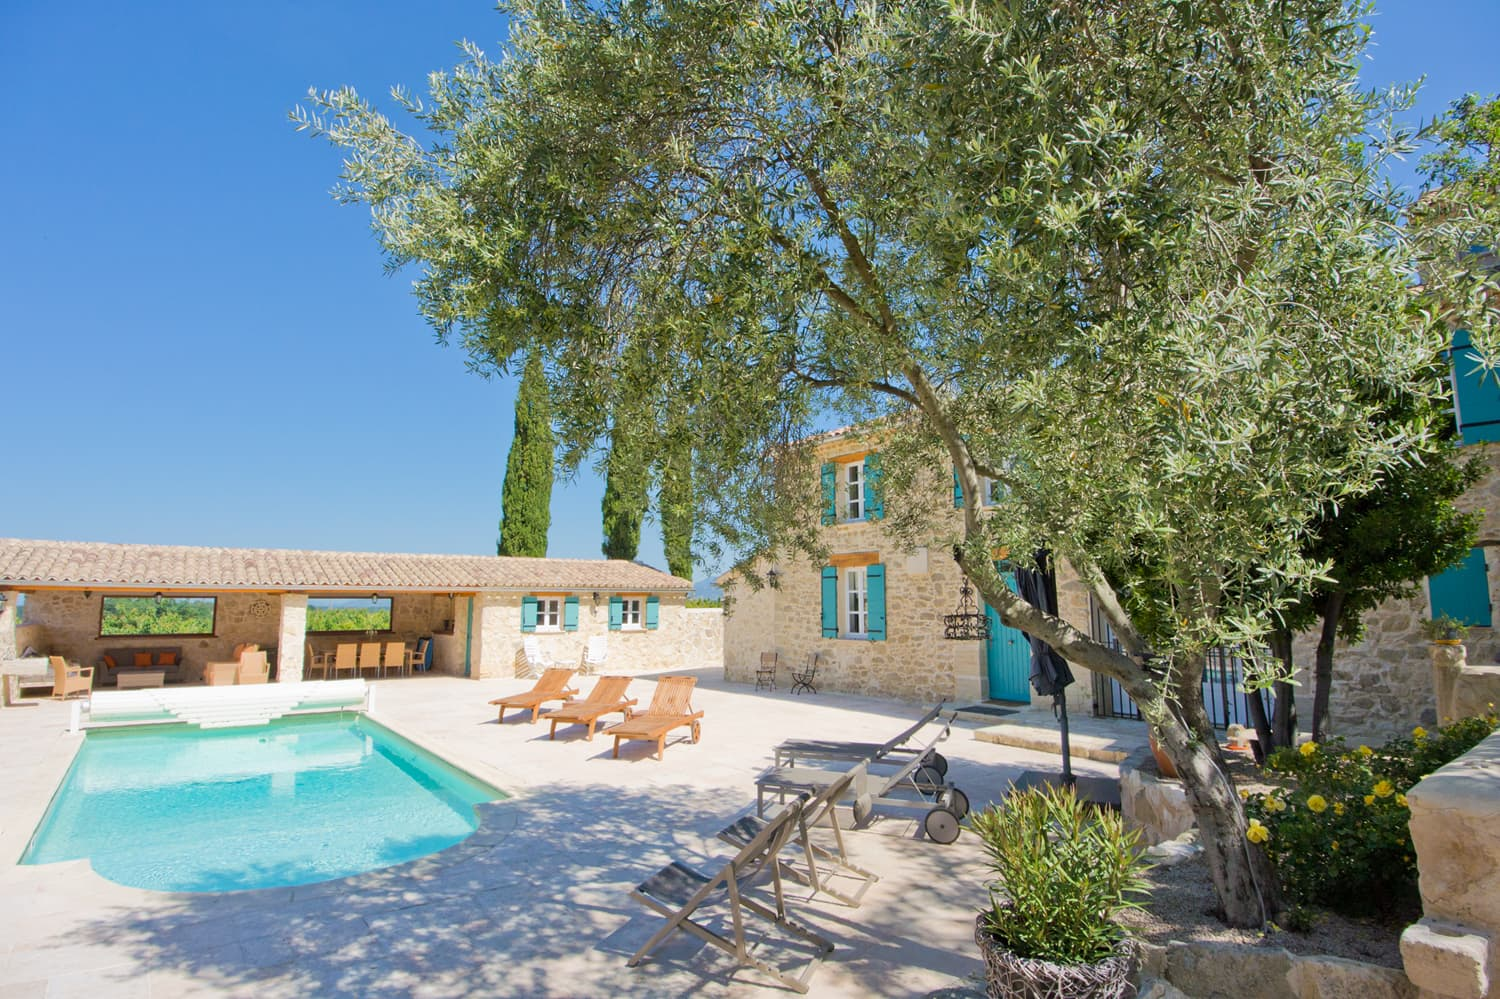 Rental accommodation in Provence with private pool